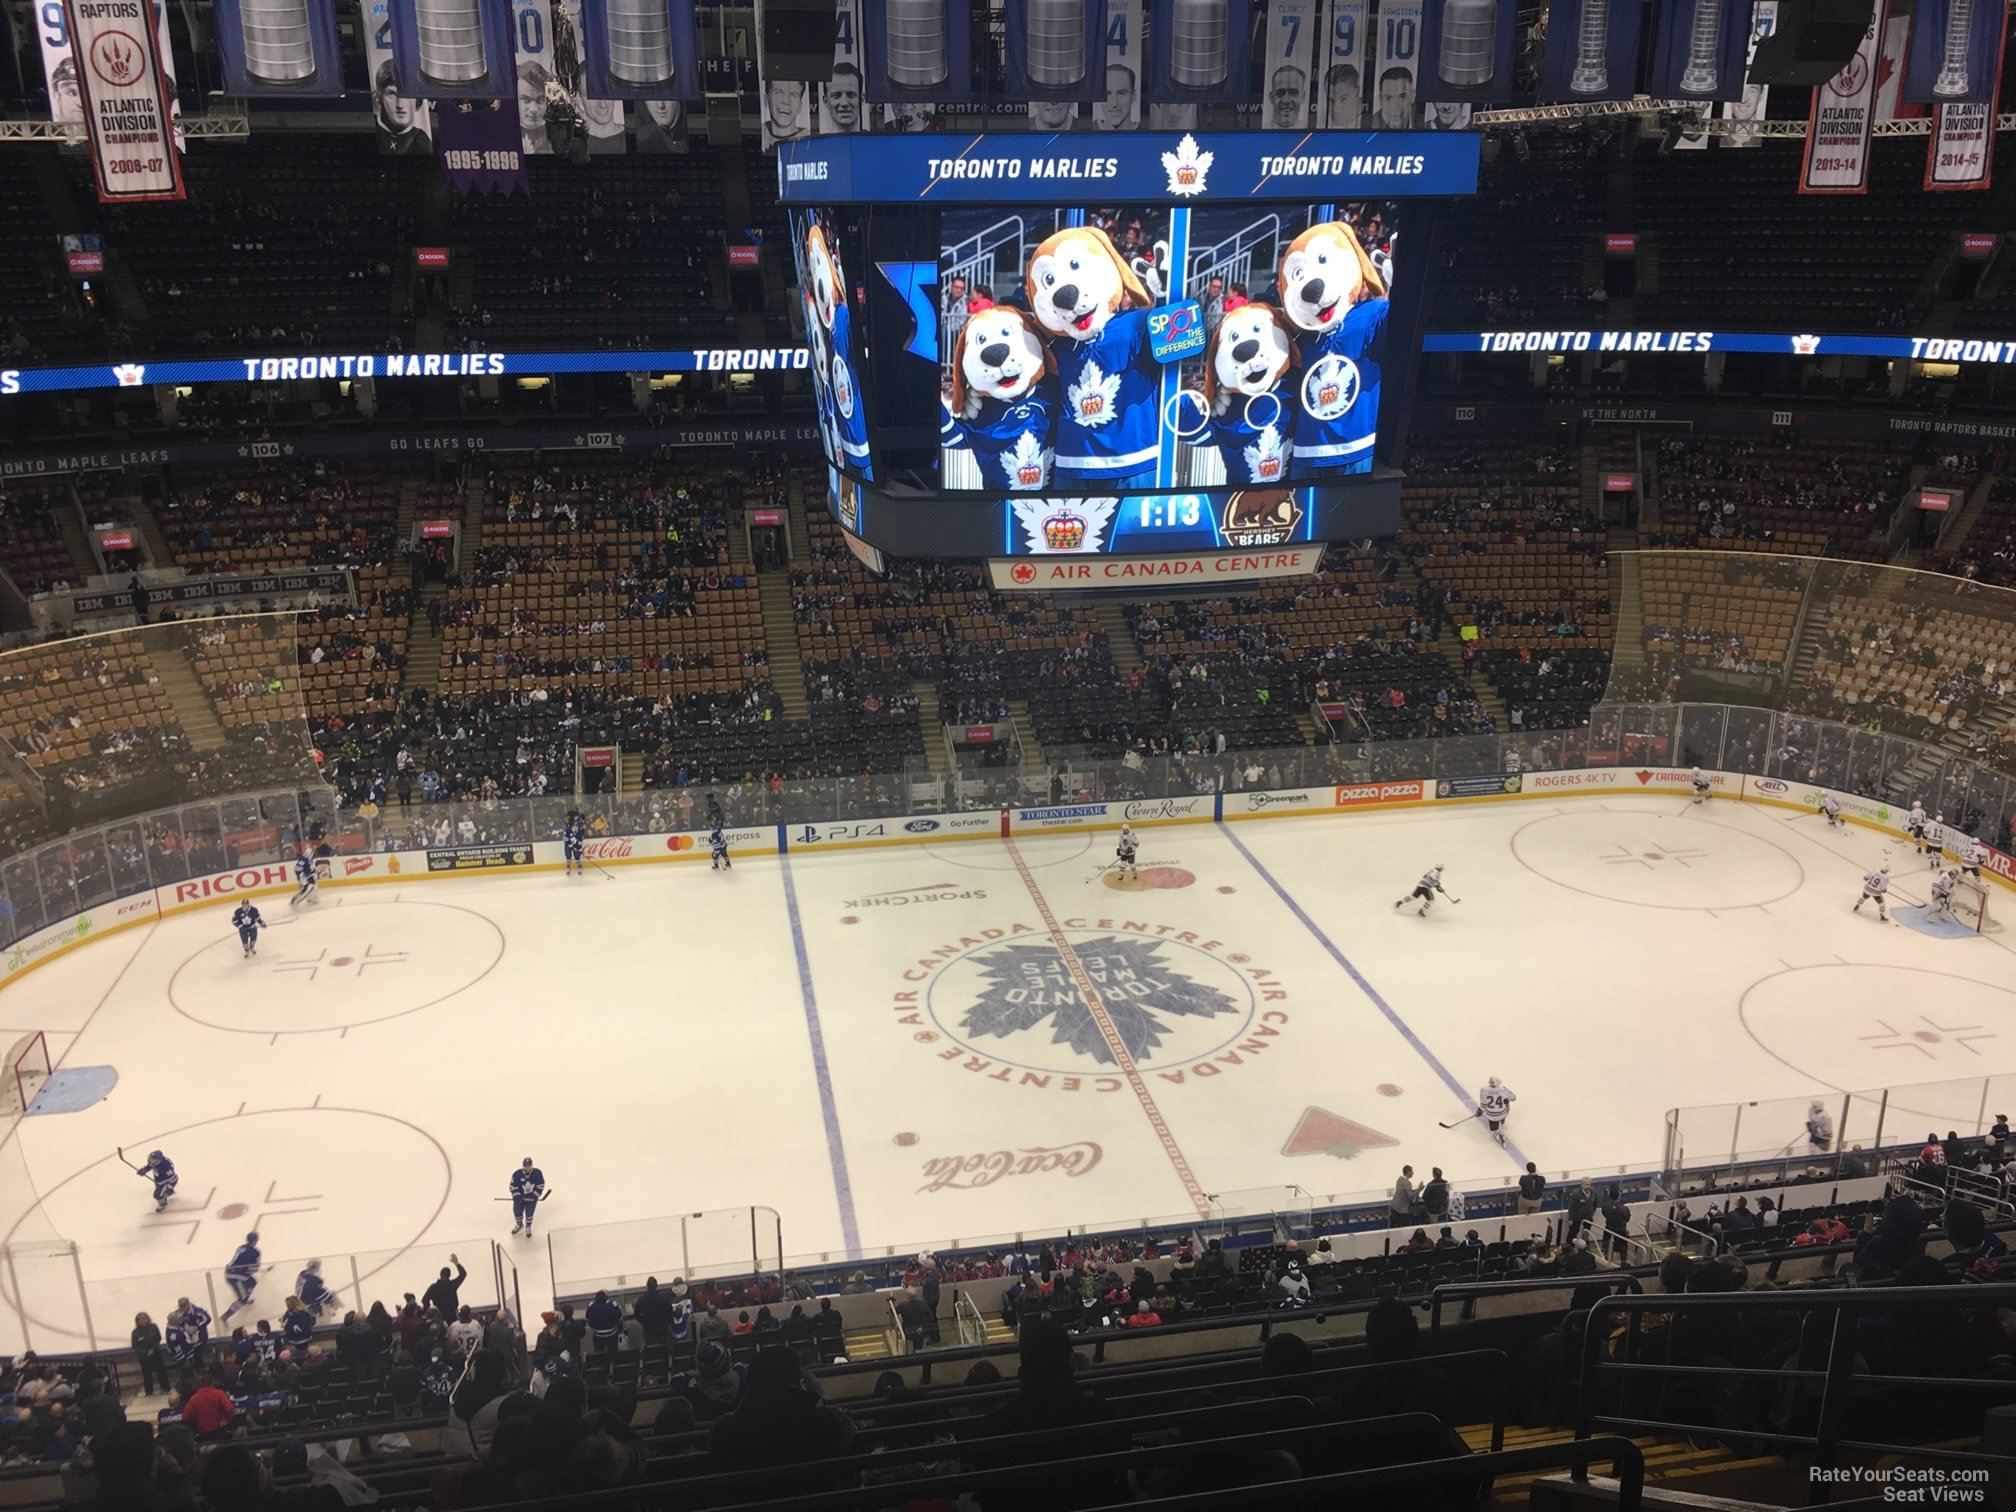 Toronto Maple Leafs Seat View for Scotiabank Arena Section 322, Row 10